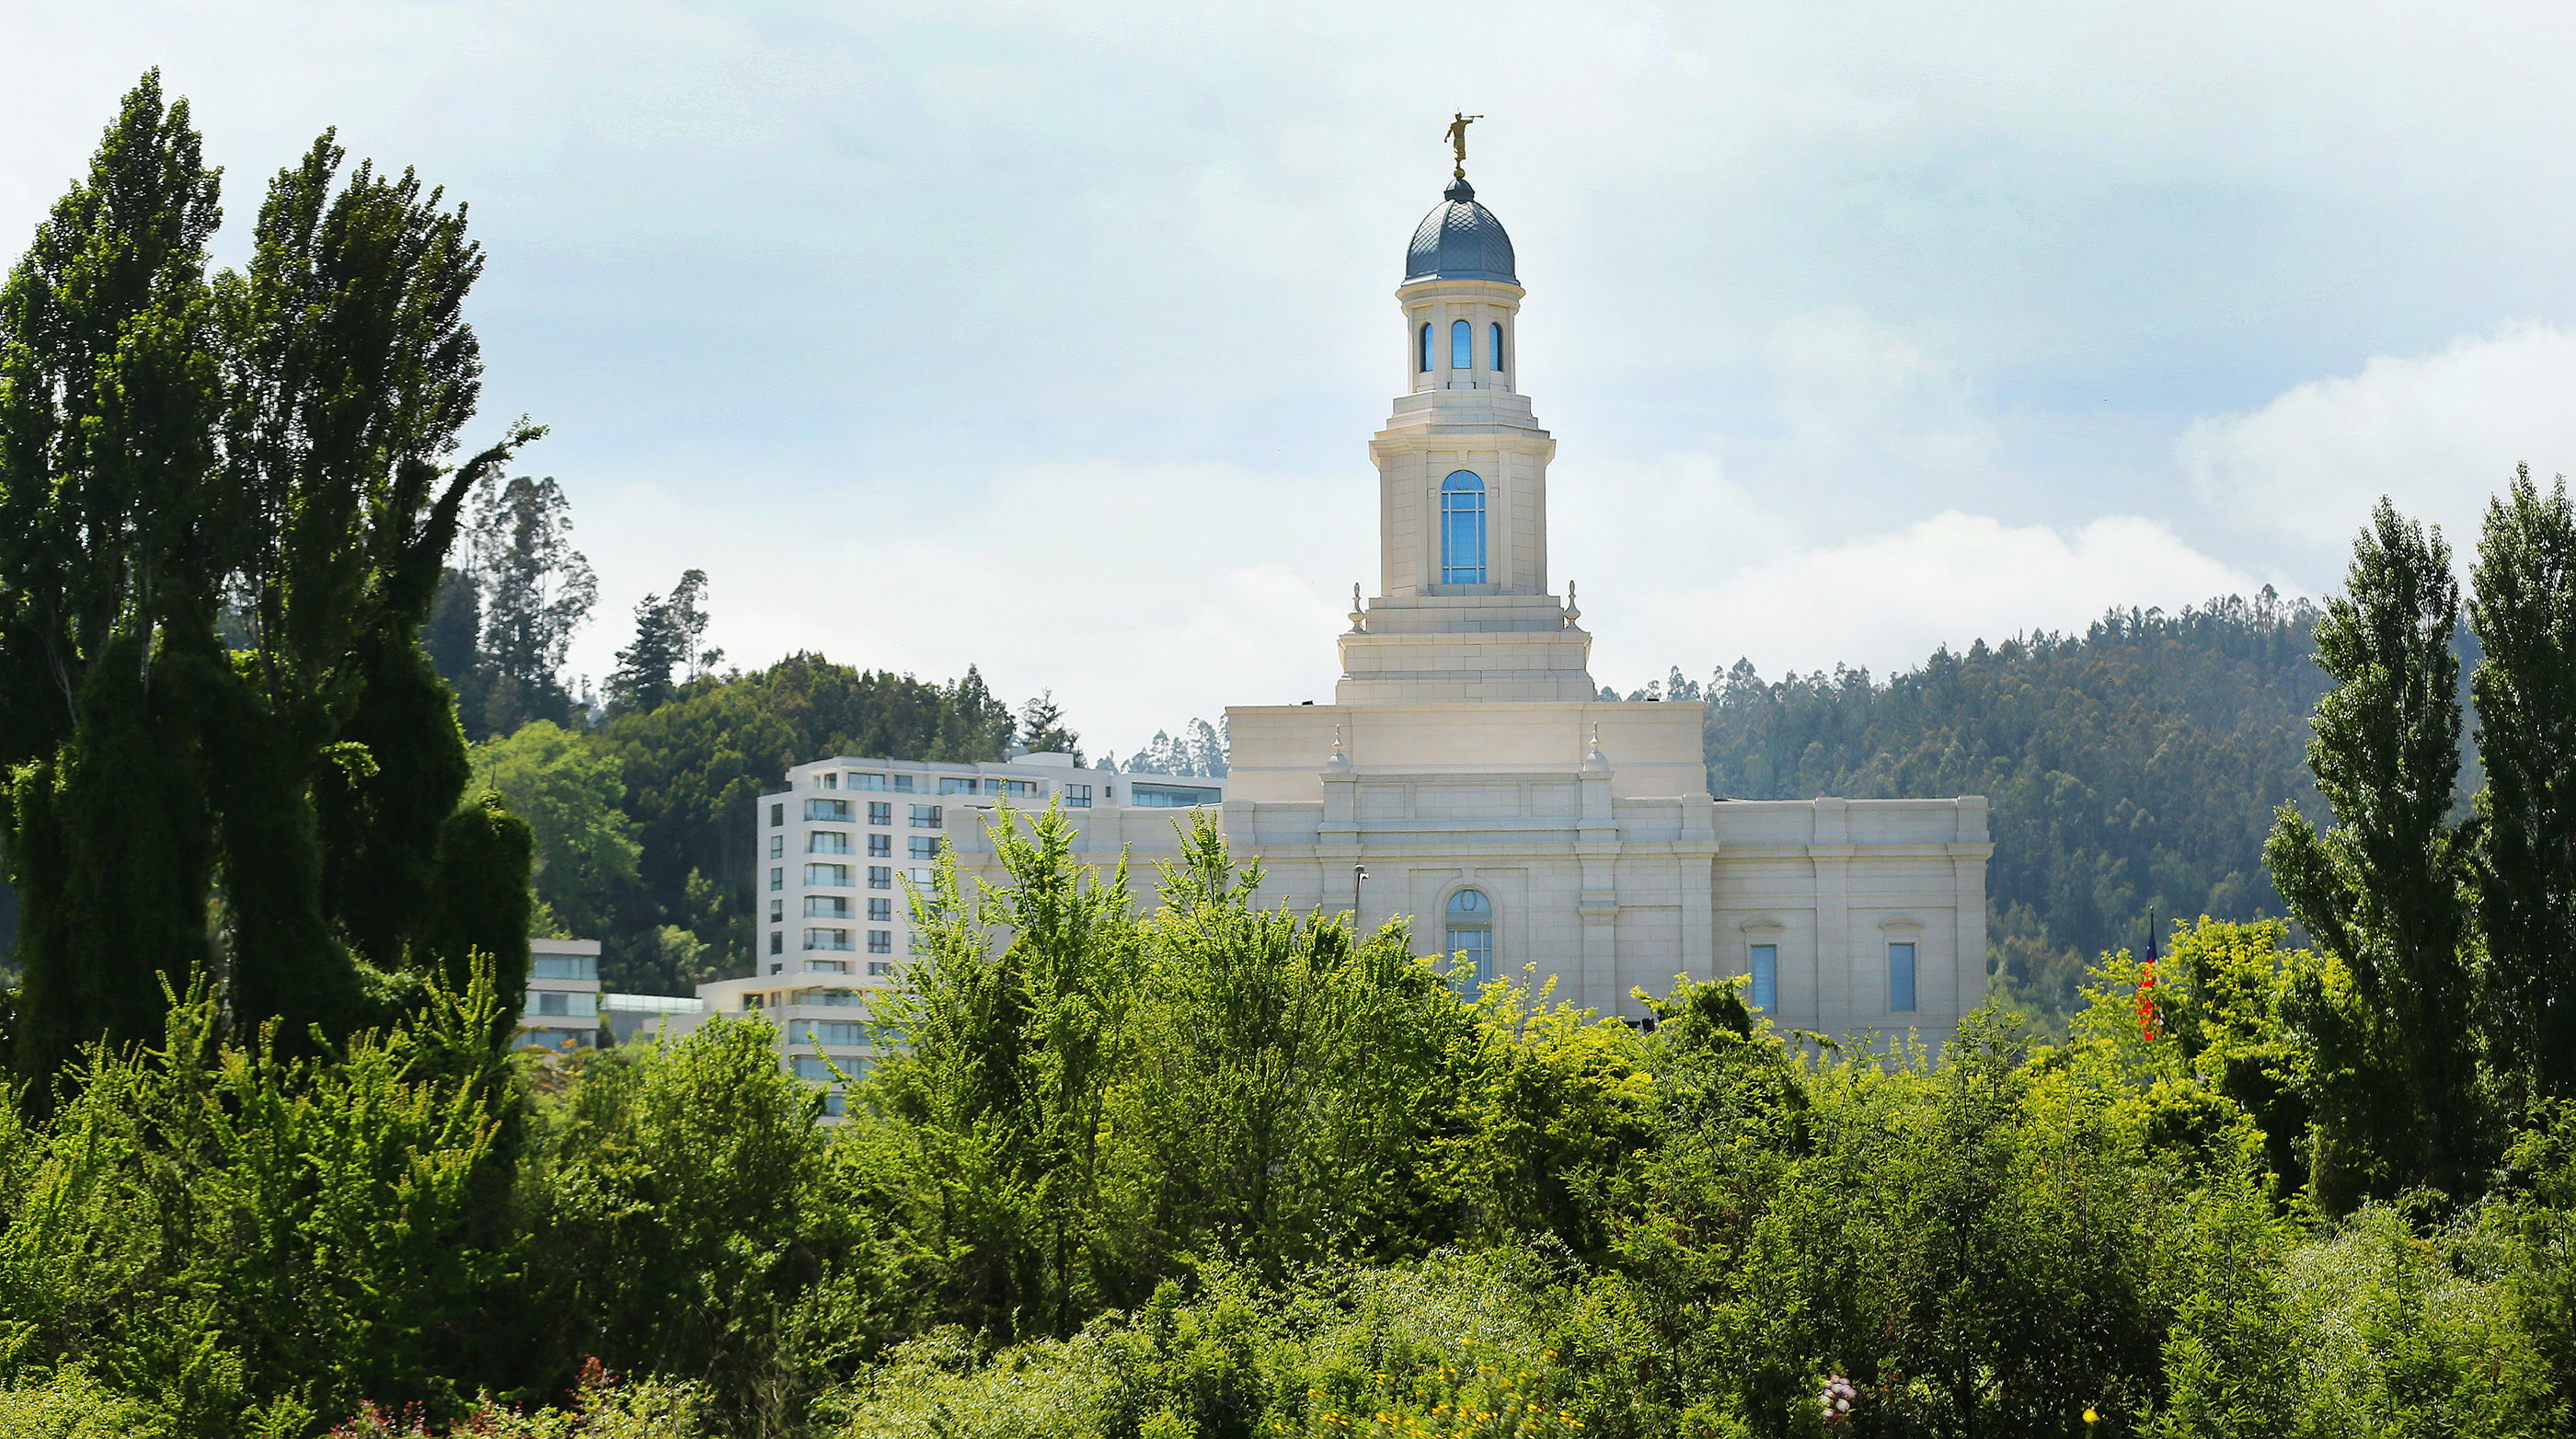 The Concepcion Chile Temple, photographed here the day before its dedication on Sunday, Oct. 28, 2018.